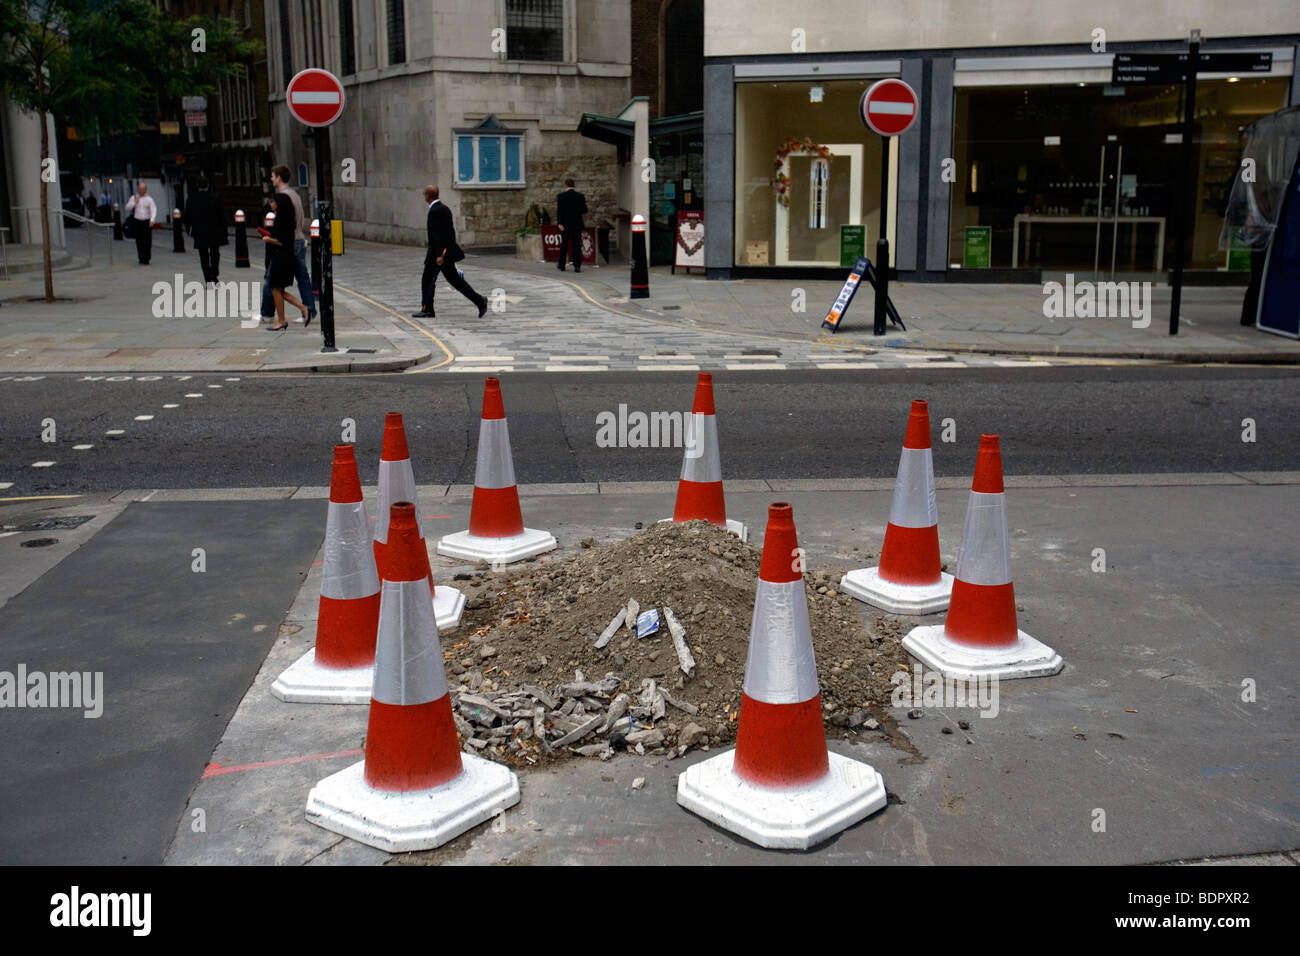 traffic cones on the pavement in the city of london - Stock Image